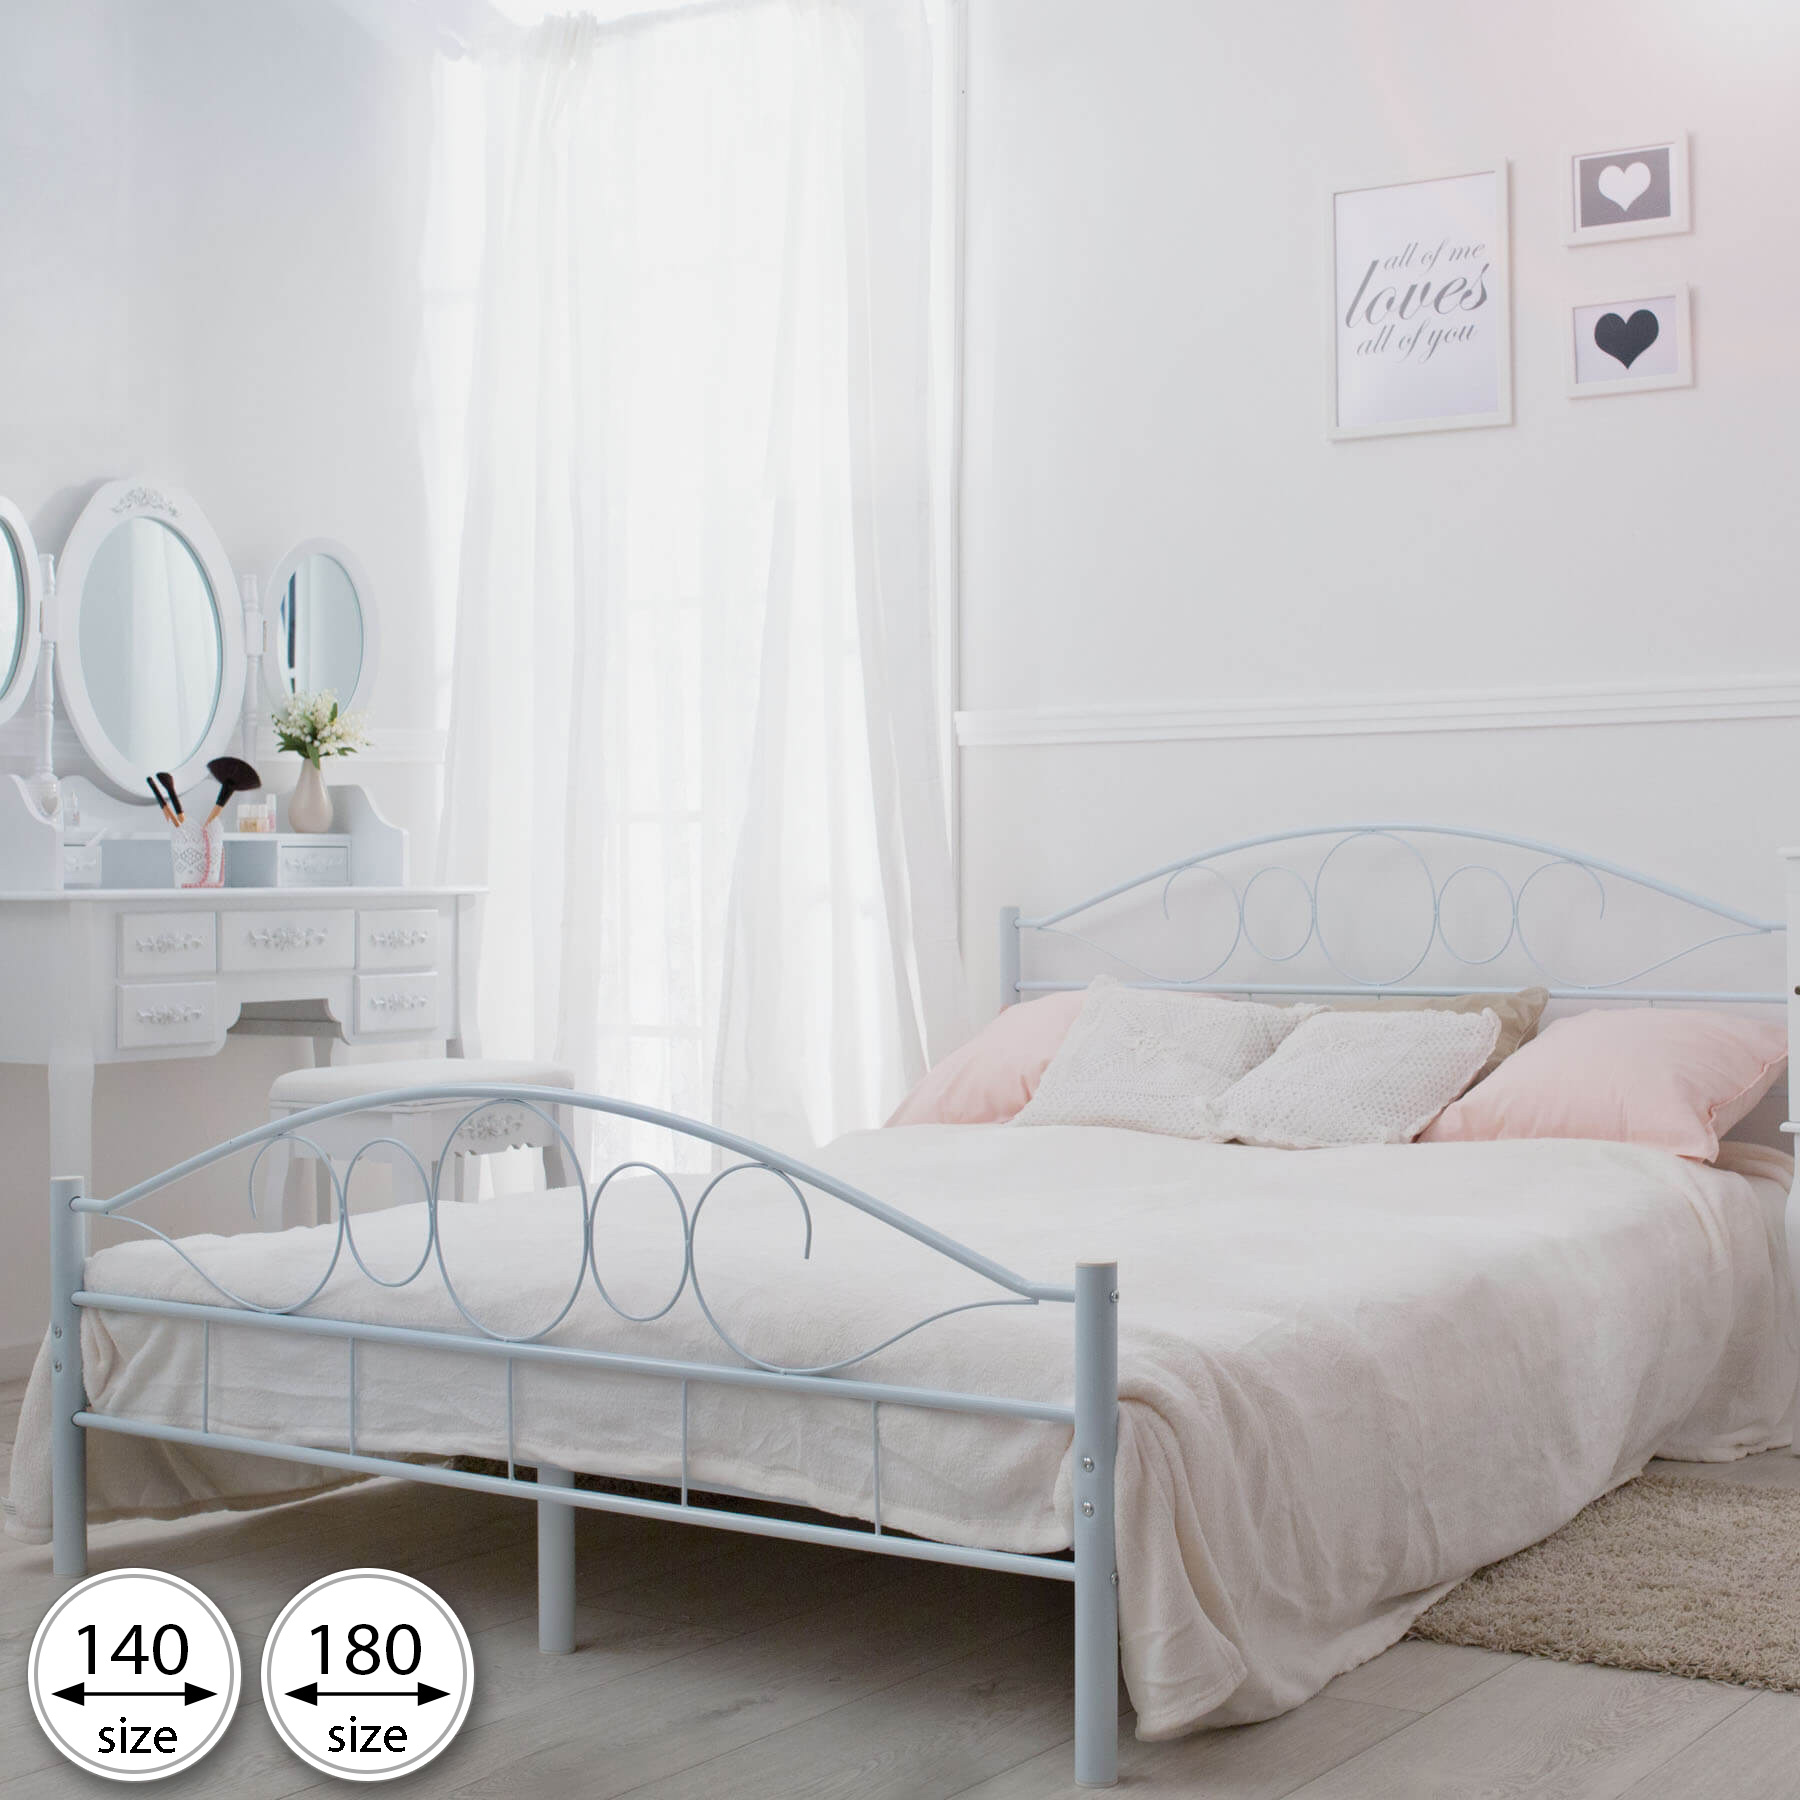 lit en m tal double 2 places cadre de lit sommier. Black Bedroom Furniture Sets. Home Design Ideas